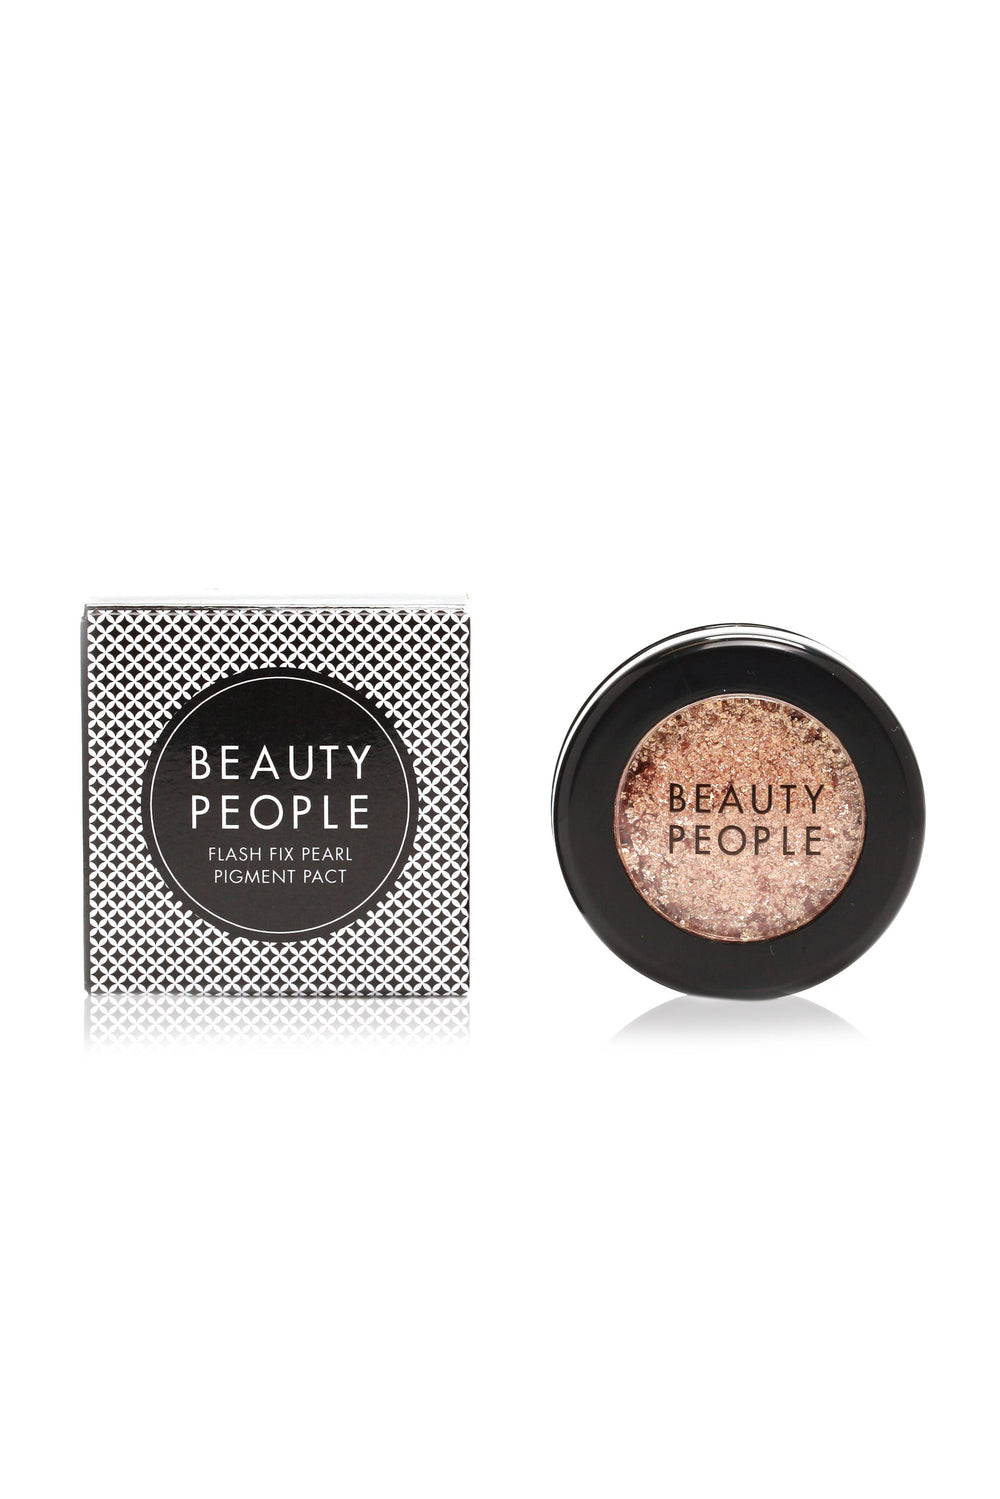 Beauty People Pearl Pigment Pact - Glow Light